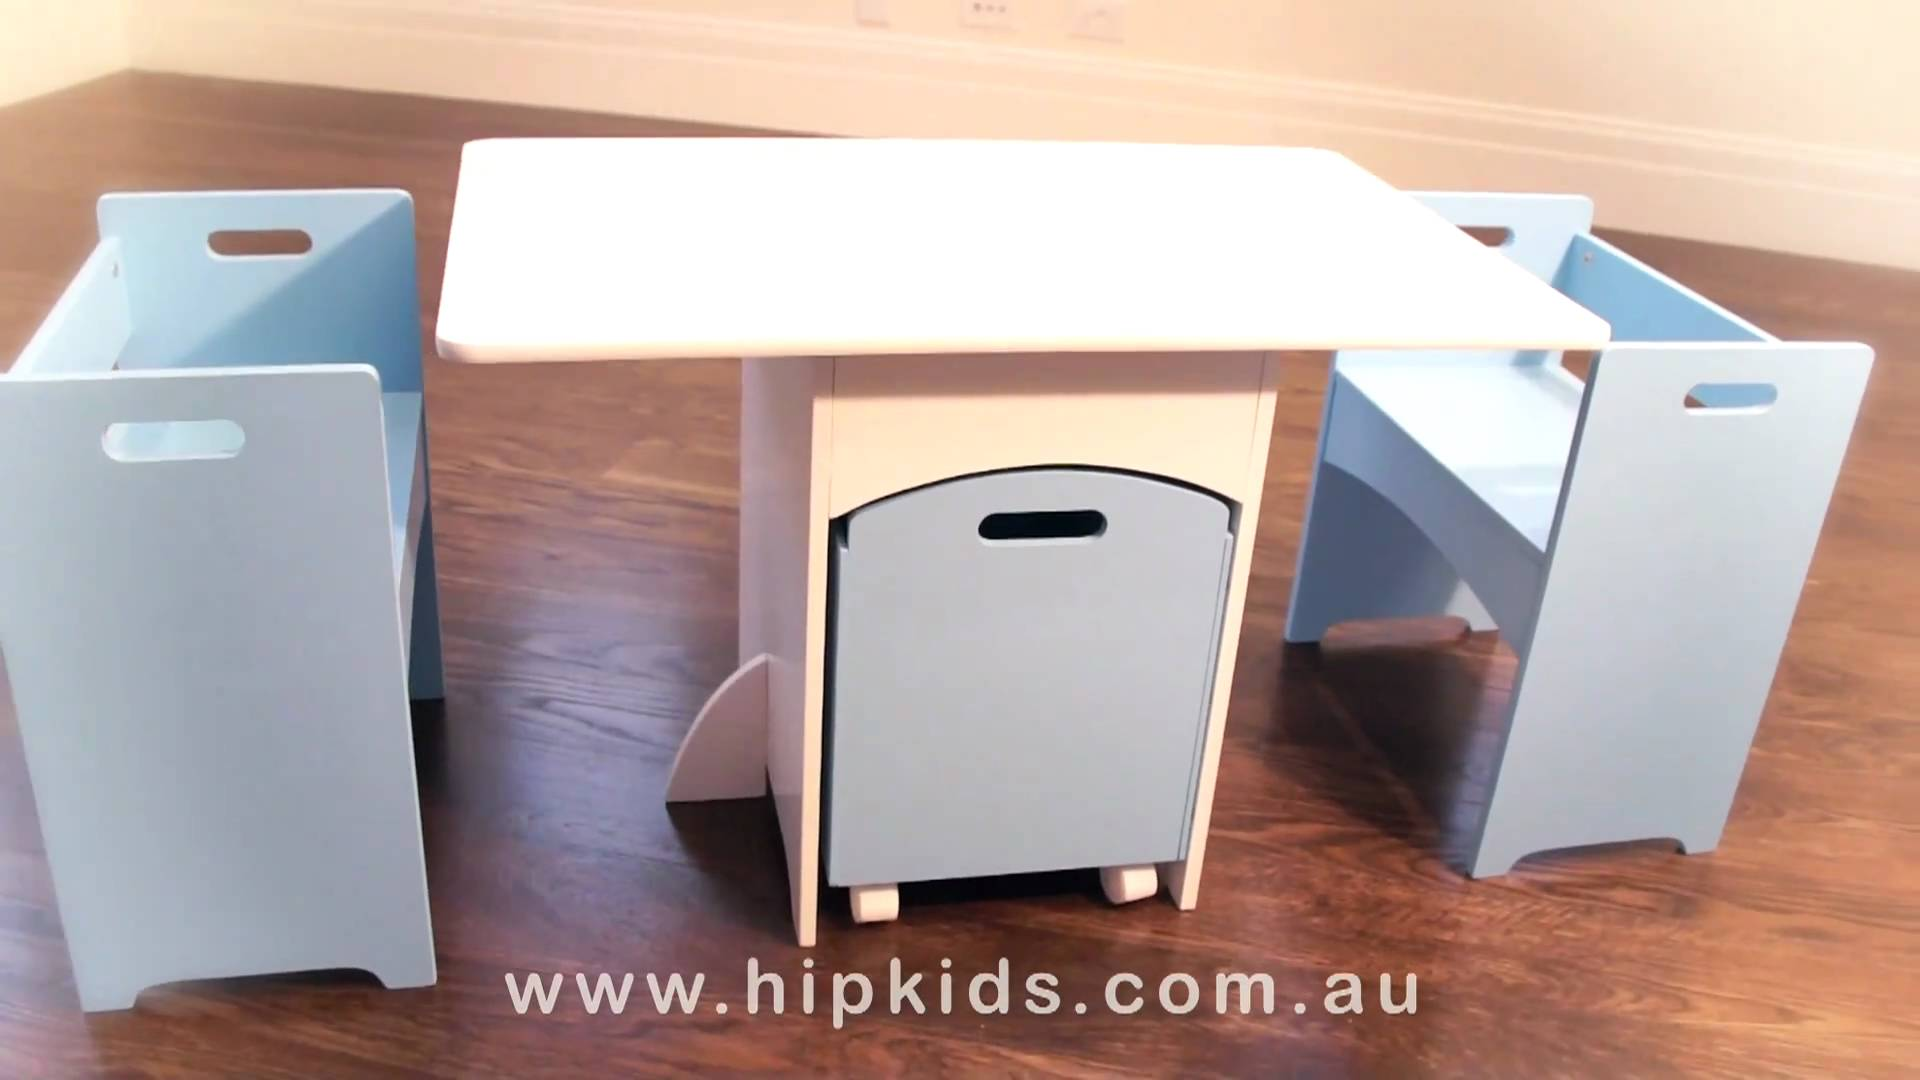 childrens table and chairs with storage hip kids table and chairs set w/ toy storage box | CFRORSY